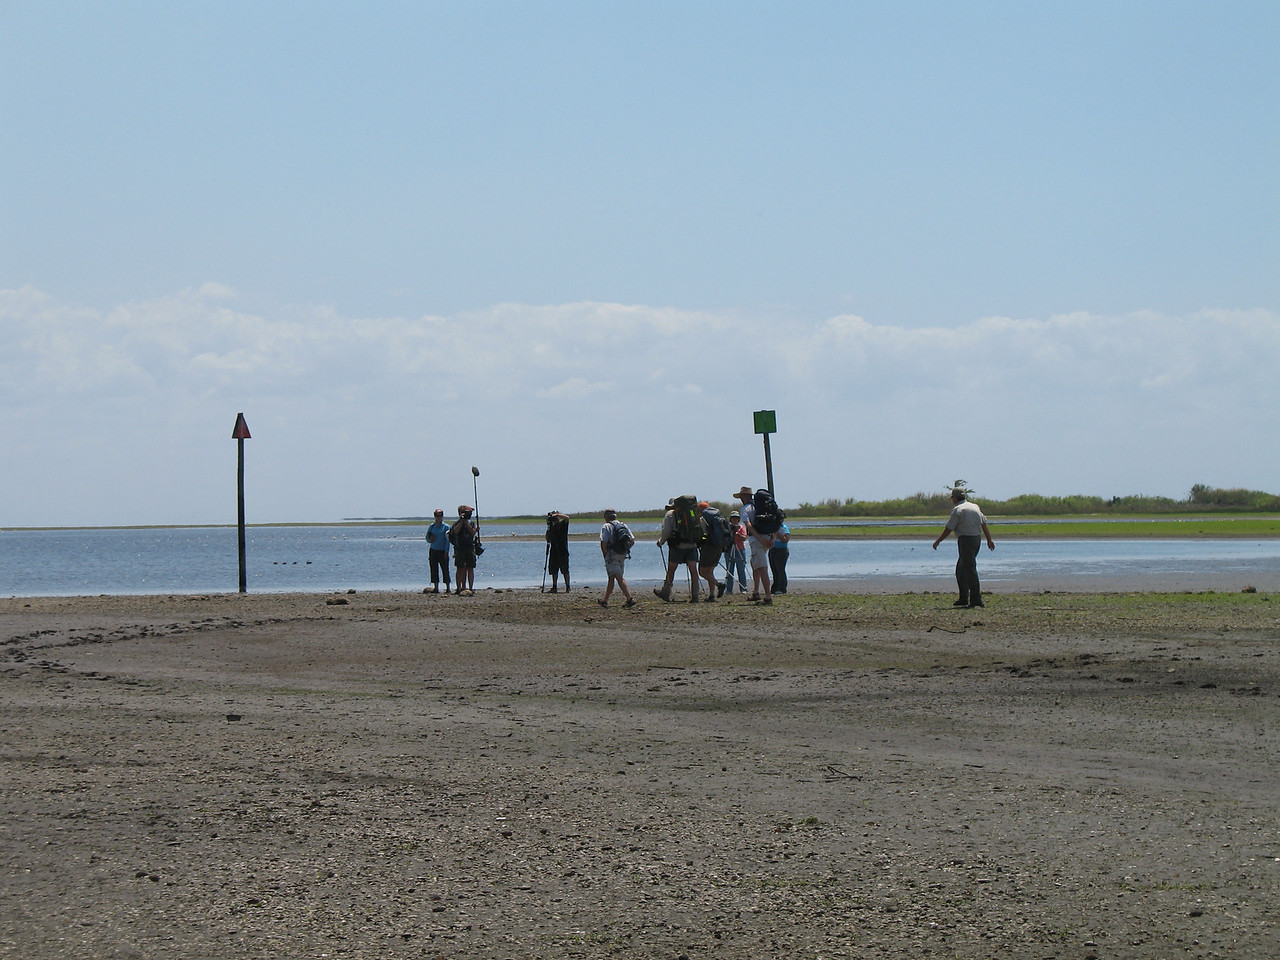 The hikers and camera crew head for the shore